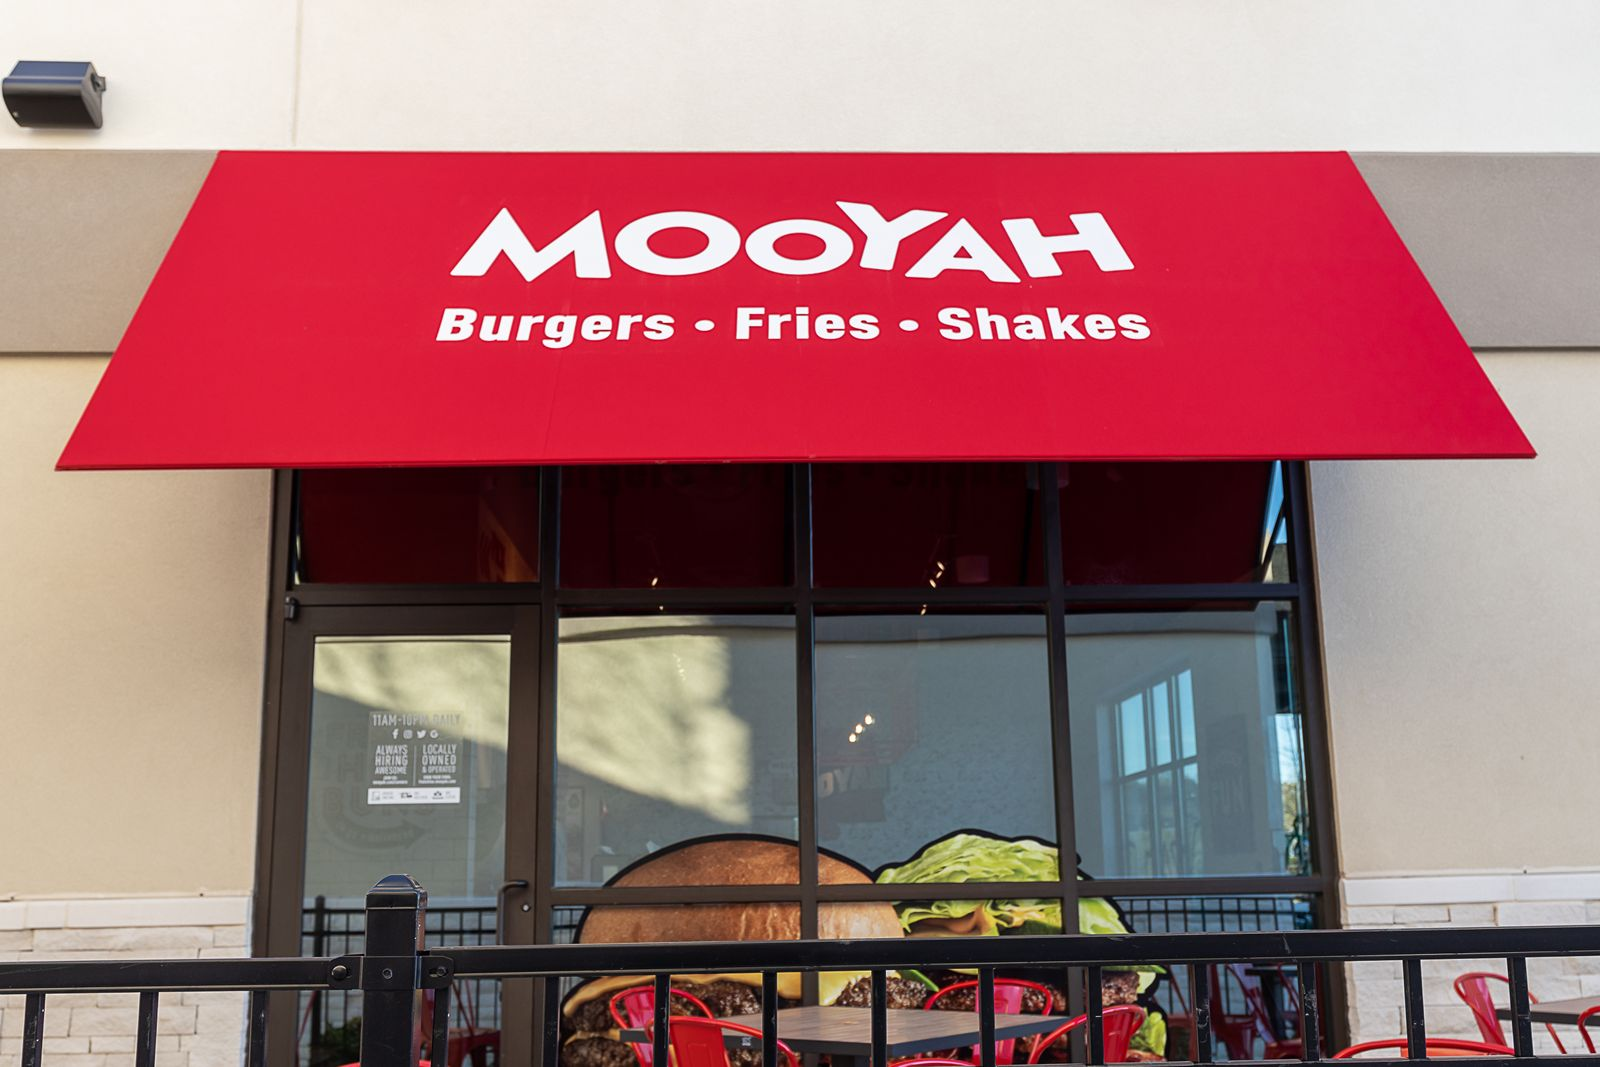 MOOYAH Inks Largest-Ever Development Deal for 15 Units in Palm Beach County With Golden Corral Franchisee Marc Verderame